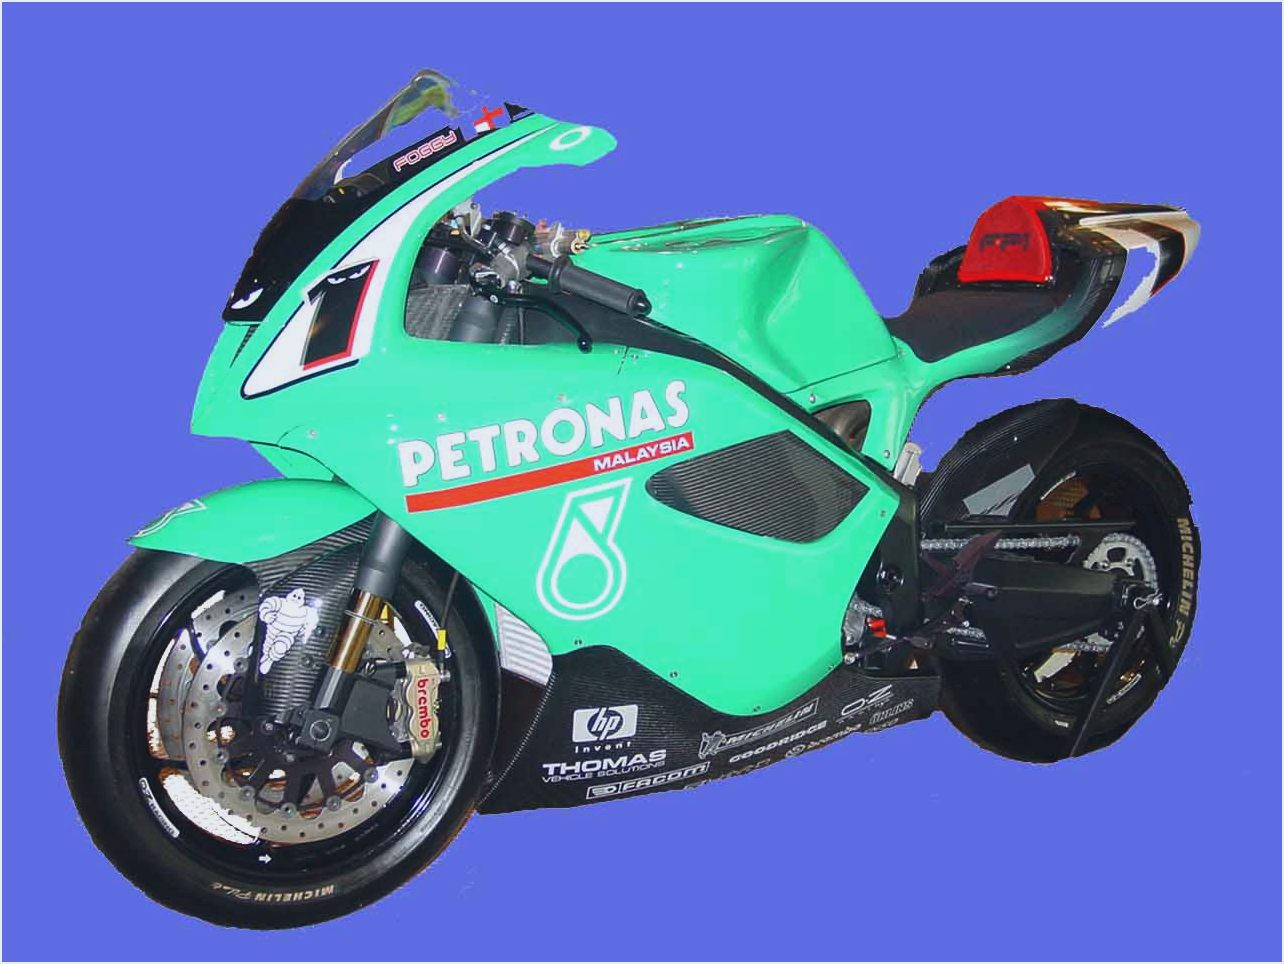 Petronas FP1 2004 images #119087